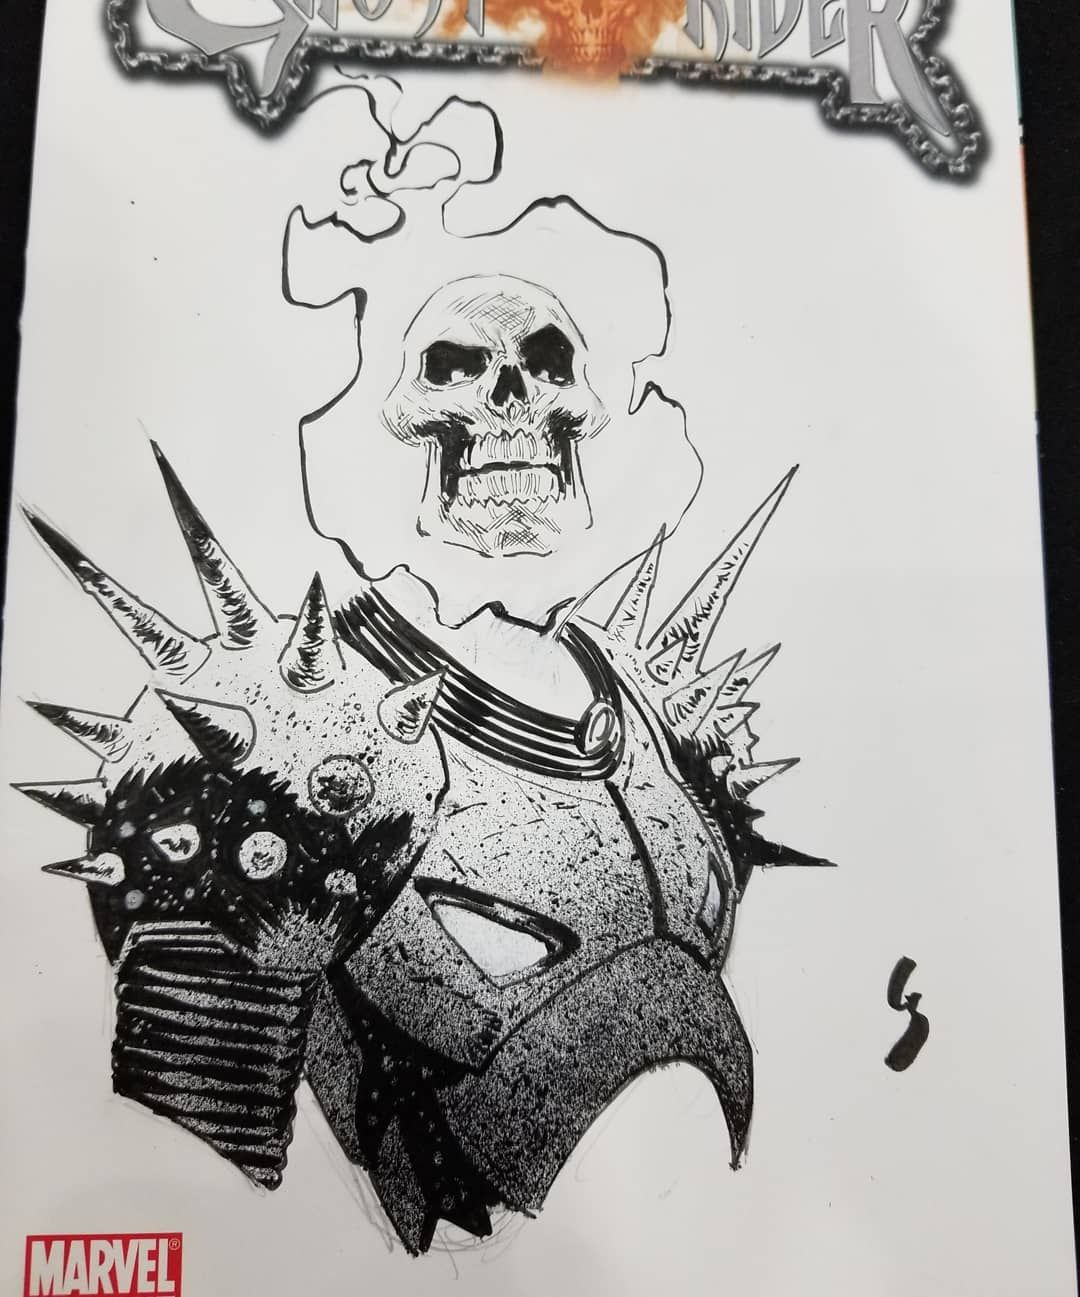 Ghost Rider Con Sketch Comicpalooza2018 Marvelcomics Cosmicghostrider Ink Ghost Rider Tattoo Ghost Rider Drawing Ghost Rider